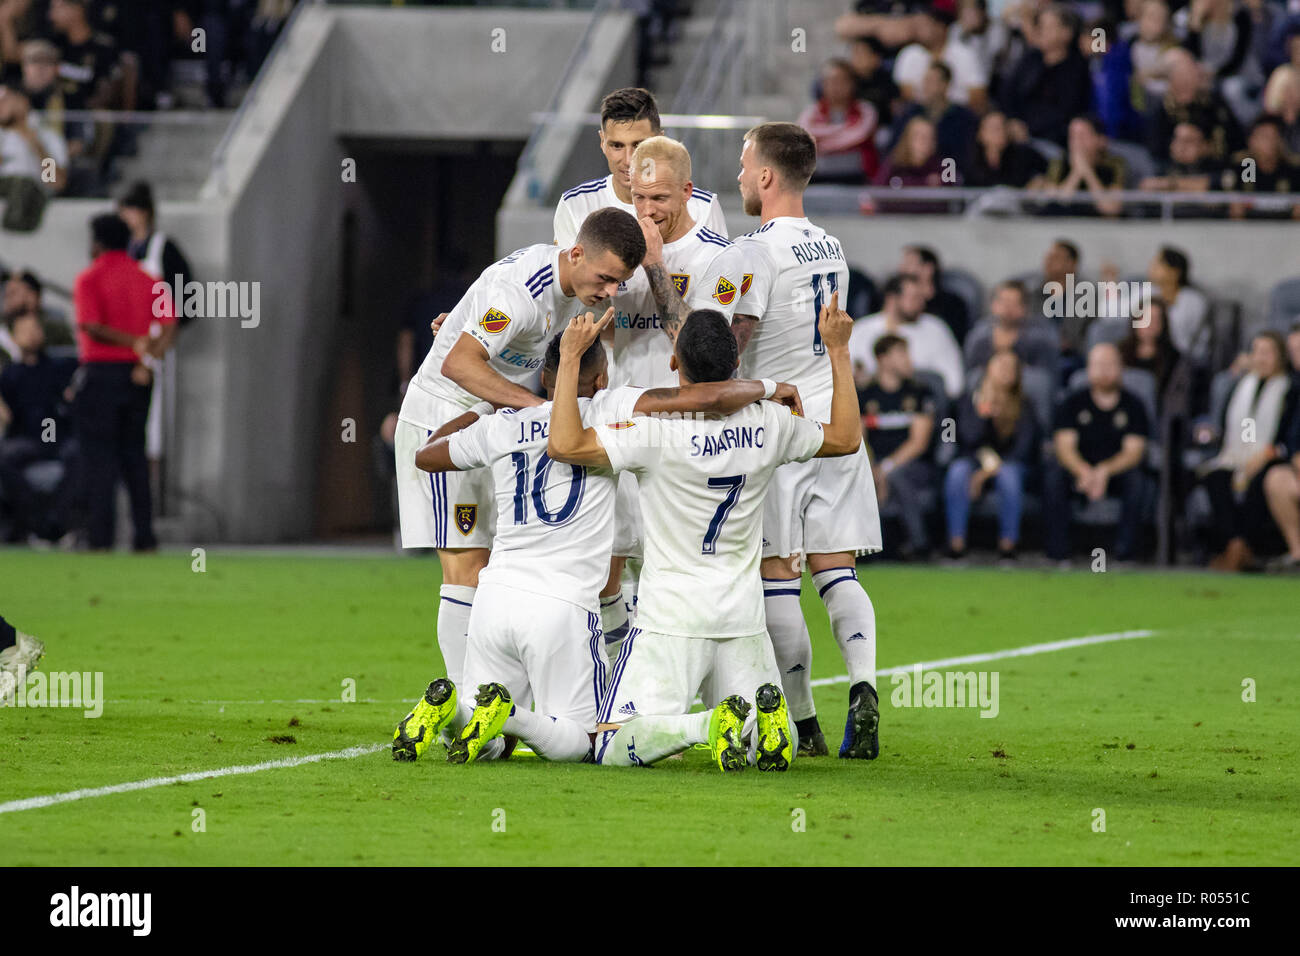 Los Angeles, USA. 1st November 2018. Real Salt Lake celebrates after LAFC's own goal in the 69th minute to send them on to the next round of the MLS playoffs. Credit: Ben Nichols/Alamy Live News - Stock Image